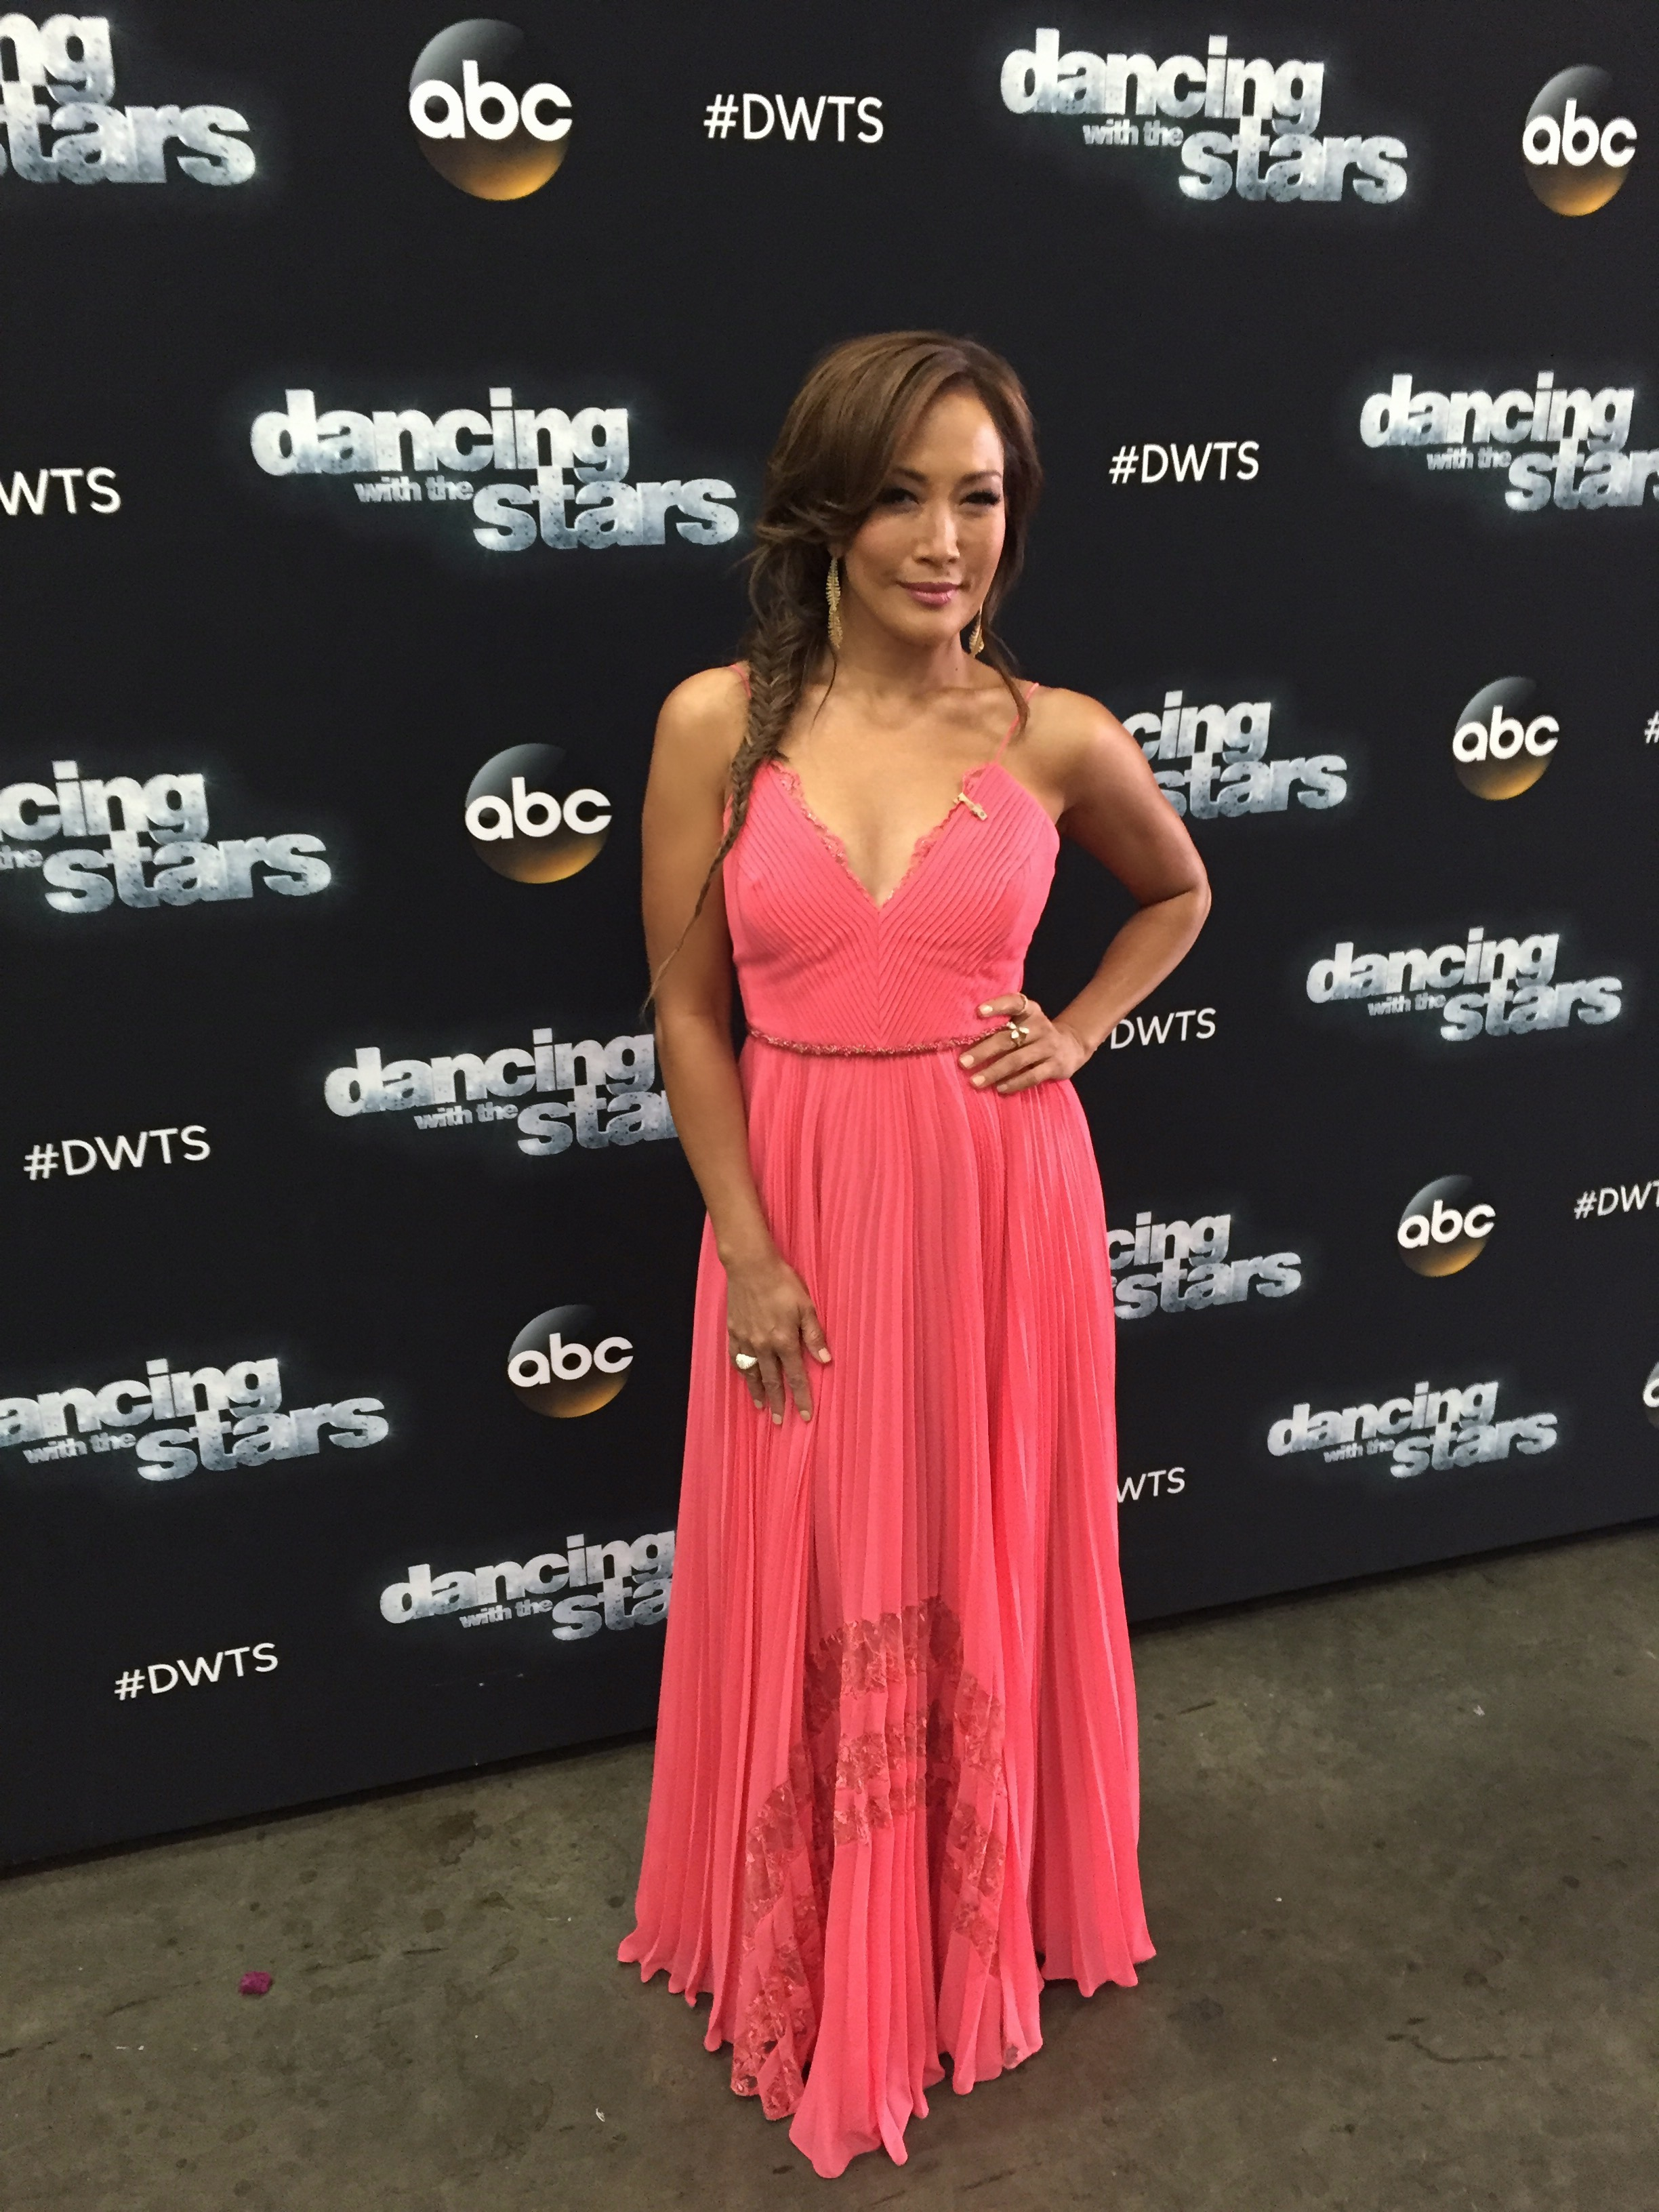 Carrie Ann Inaba's 'Dancing With the Stars' blog, Week 2 pic